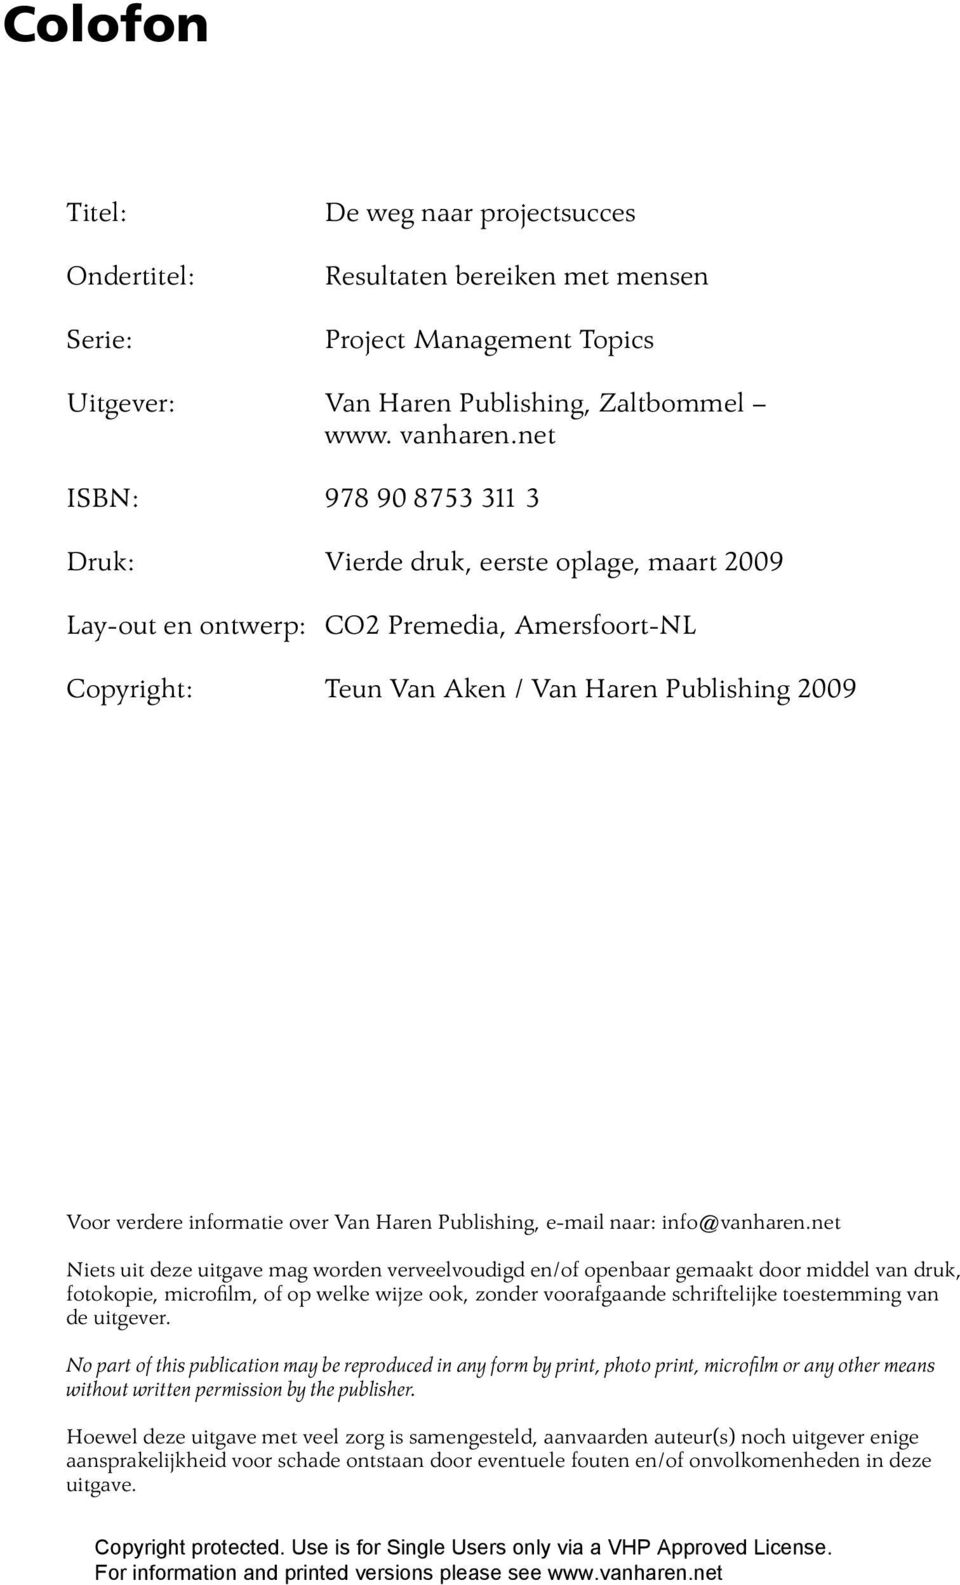 over Van Haren Publishing, e-mail naar: info@vanharen.